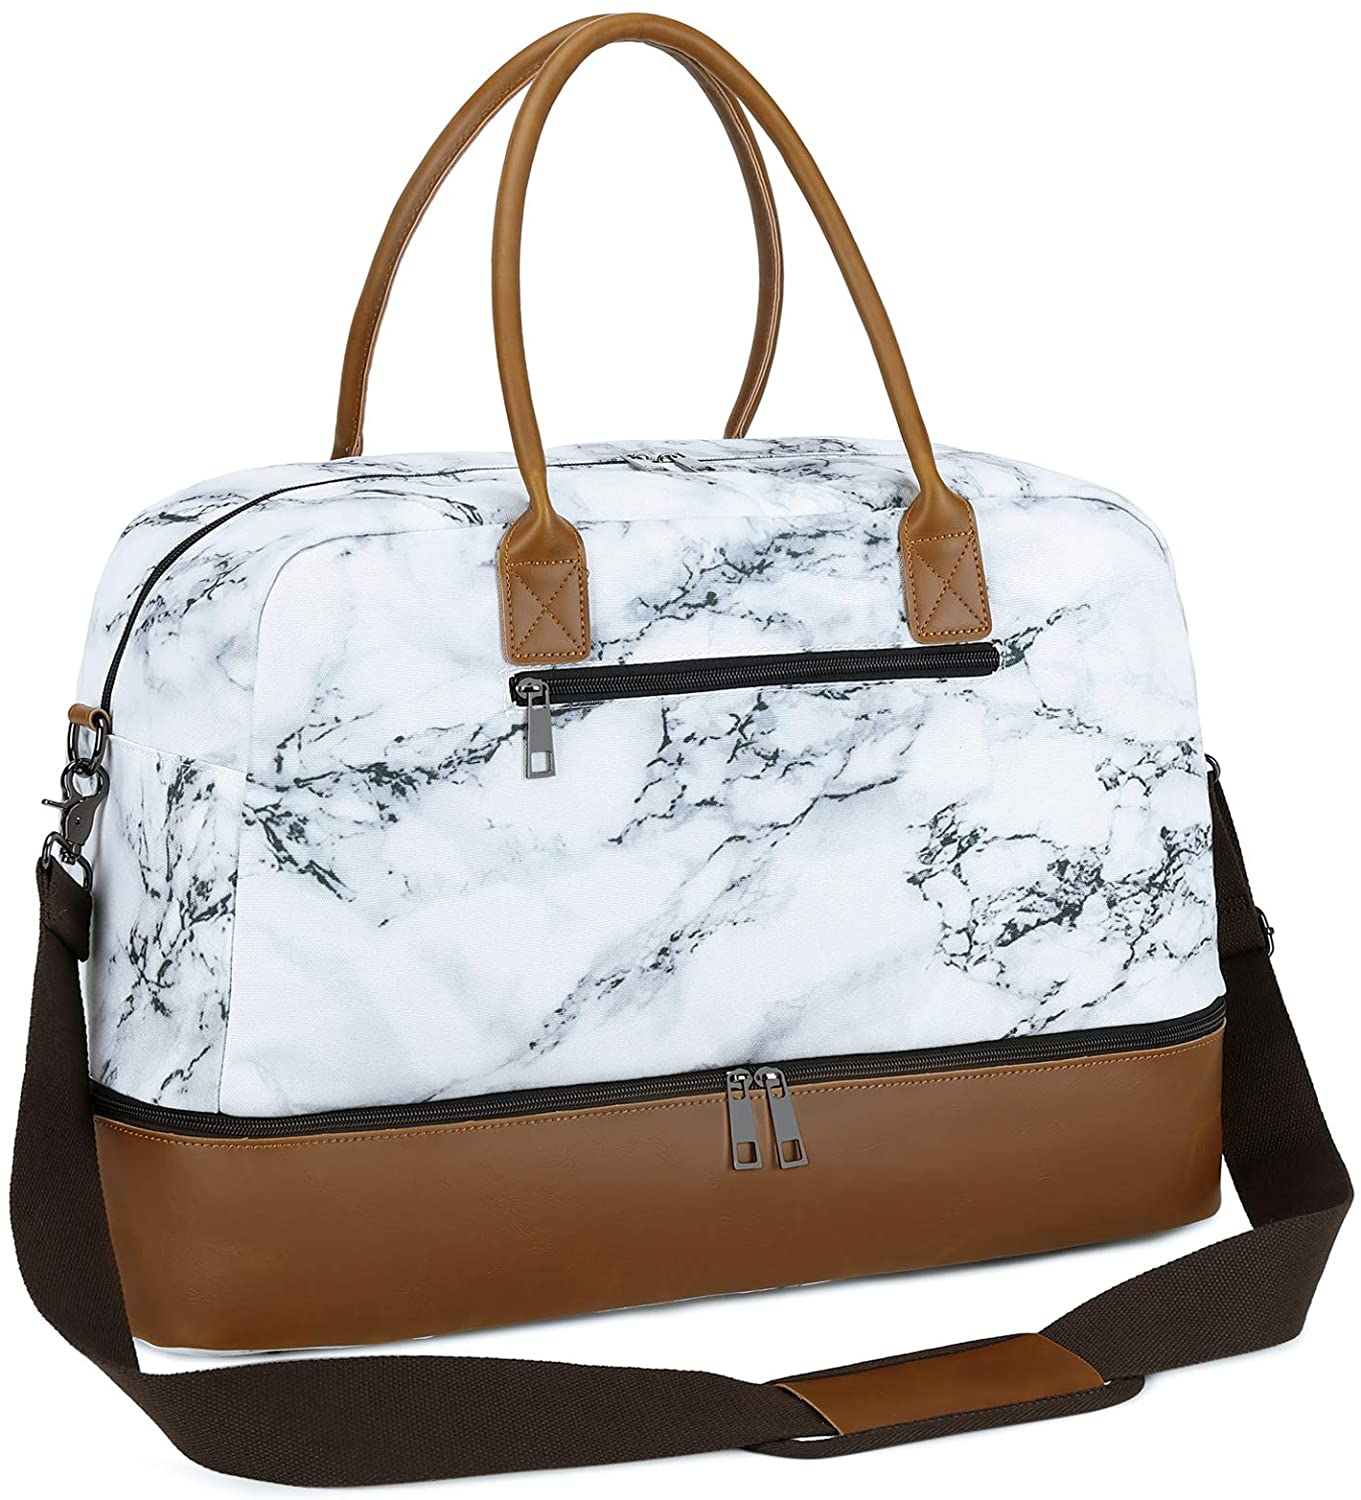 CAMTOP Overnight Weekender Bag for Women Men, Carry-on Travel Tote with Shoe Compartment (Marble)